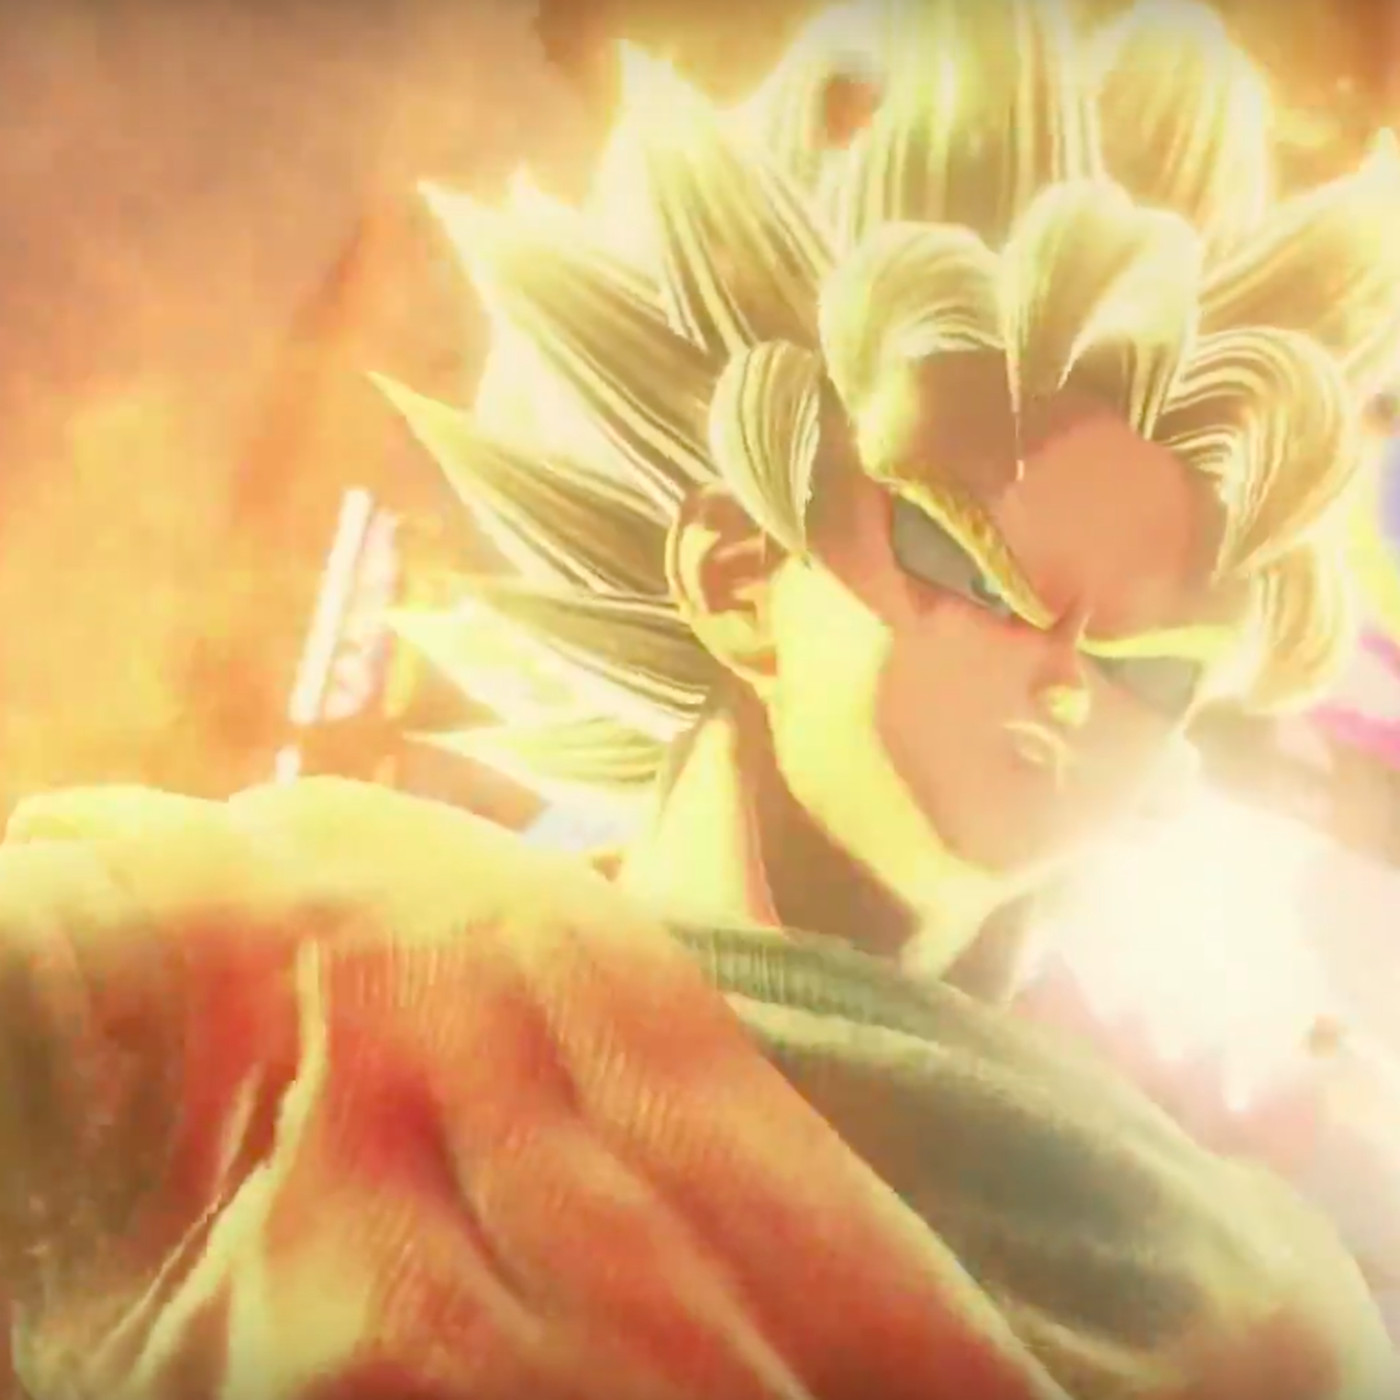 Jump Force Is An Anime Brawler Starring Goku And Naruto Along With Other Shonen Series